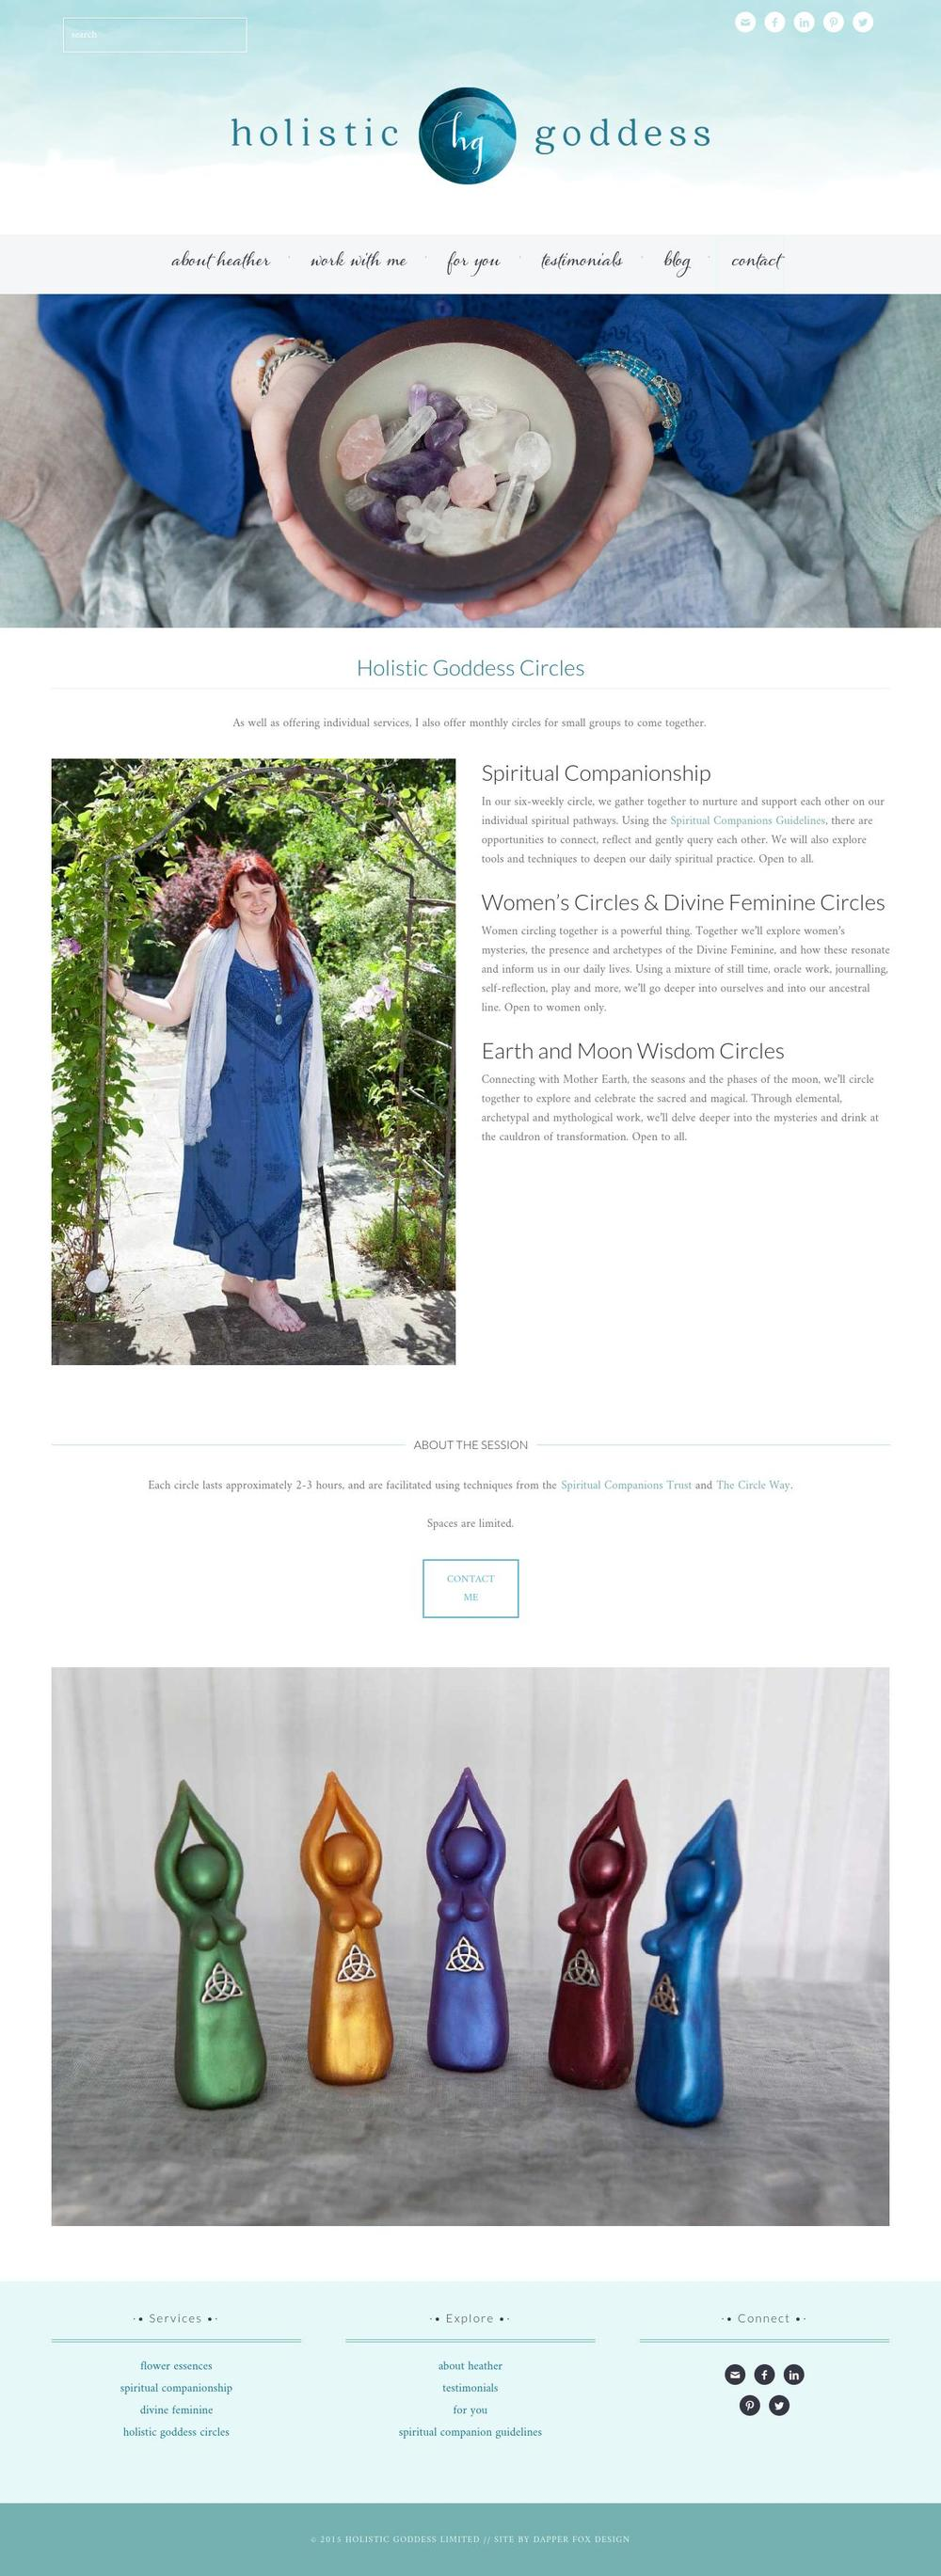 Holistic Goddess Website Design by Dapper Fox Design - Modern Website Design, blue, elegant, sleek, ocean